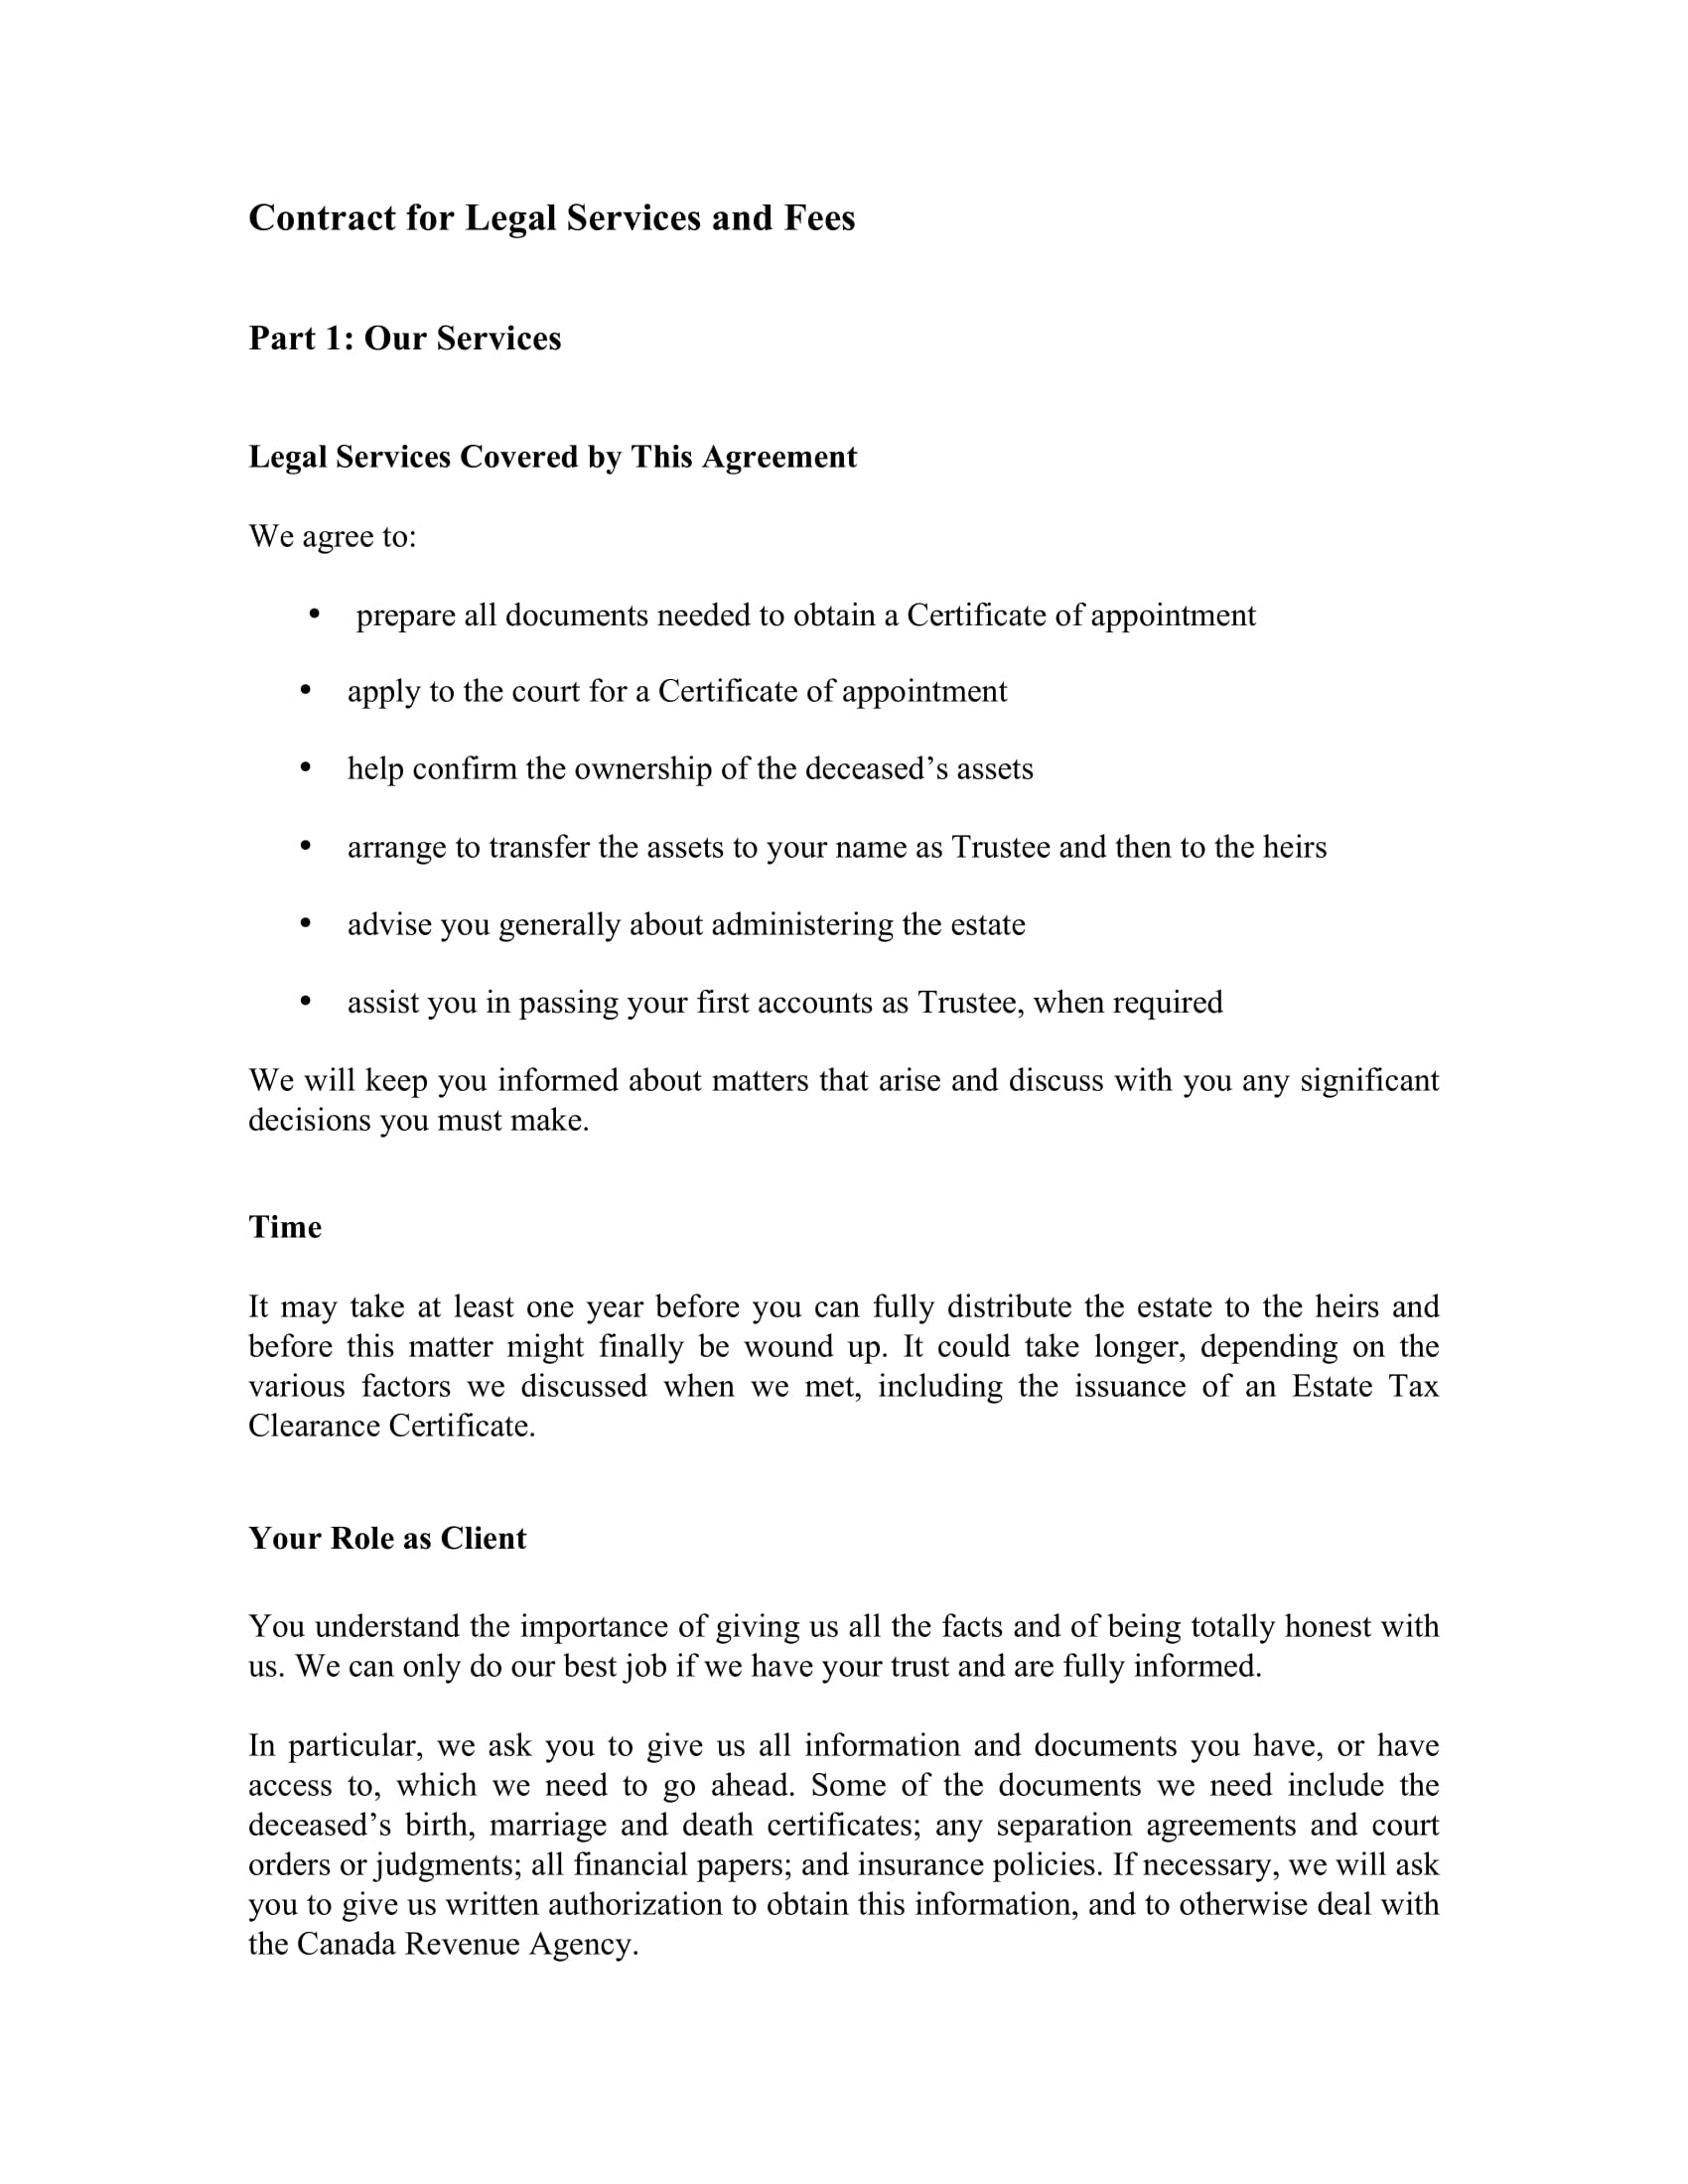 legal services and fees contract form 1